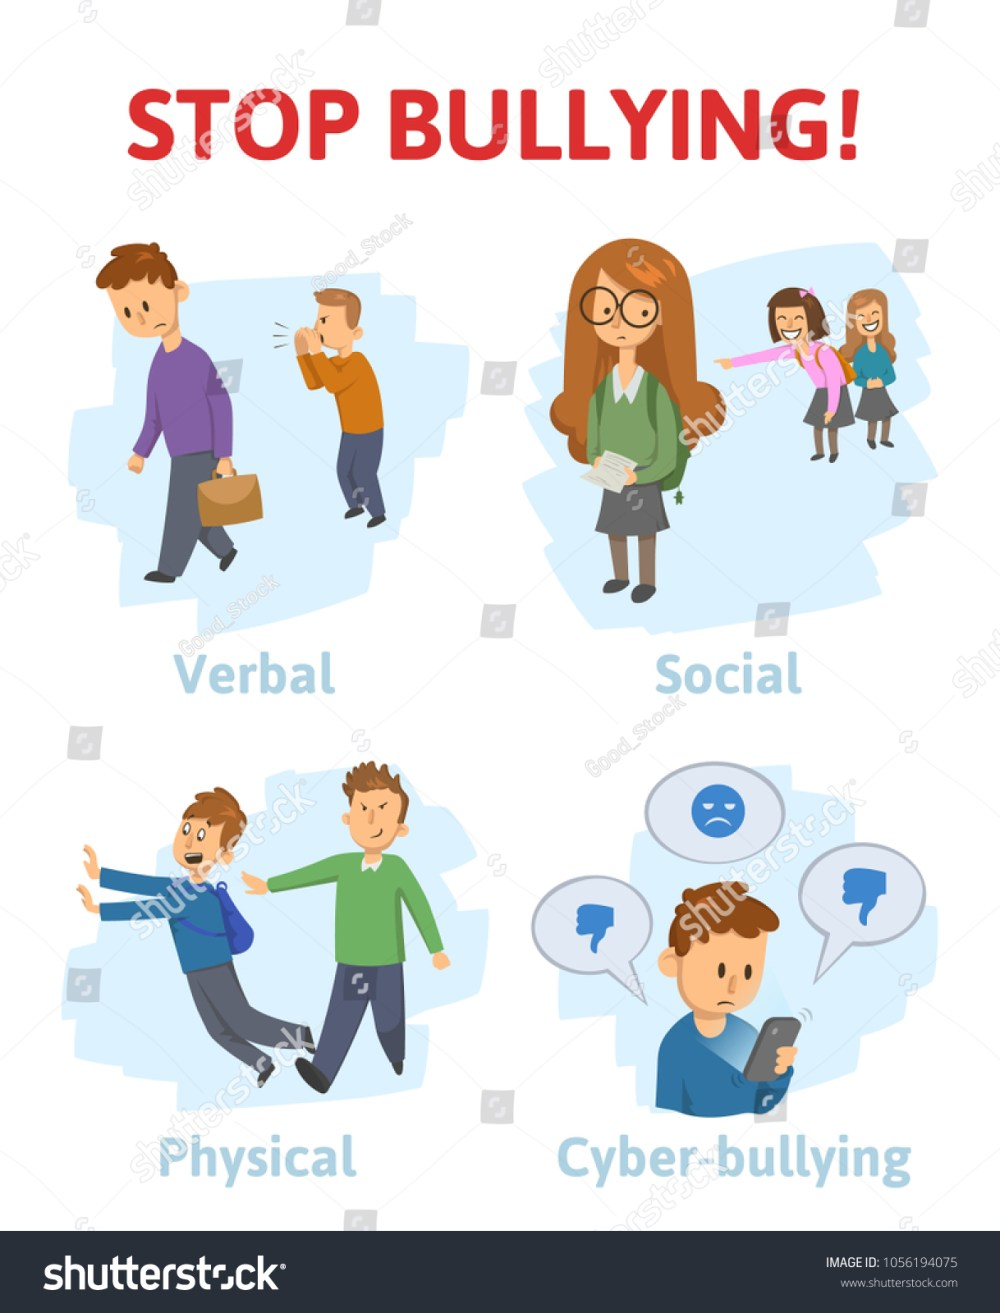 medium resolution of stop bullying in the school 4 types of bullying verbal social physical